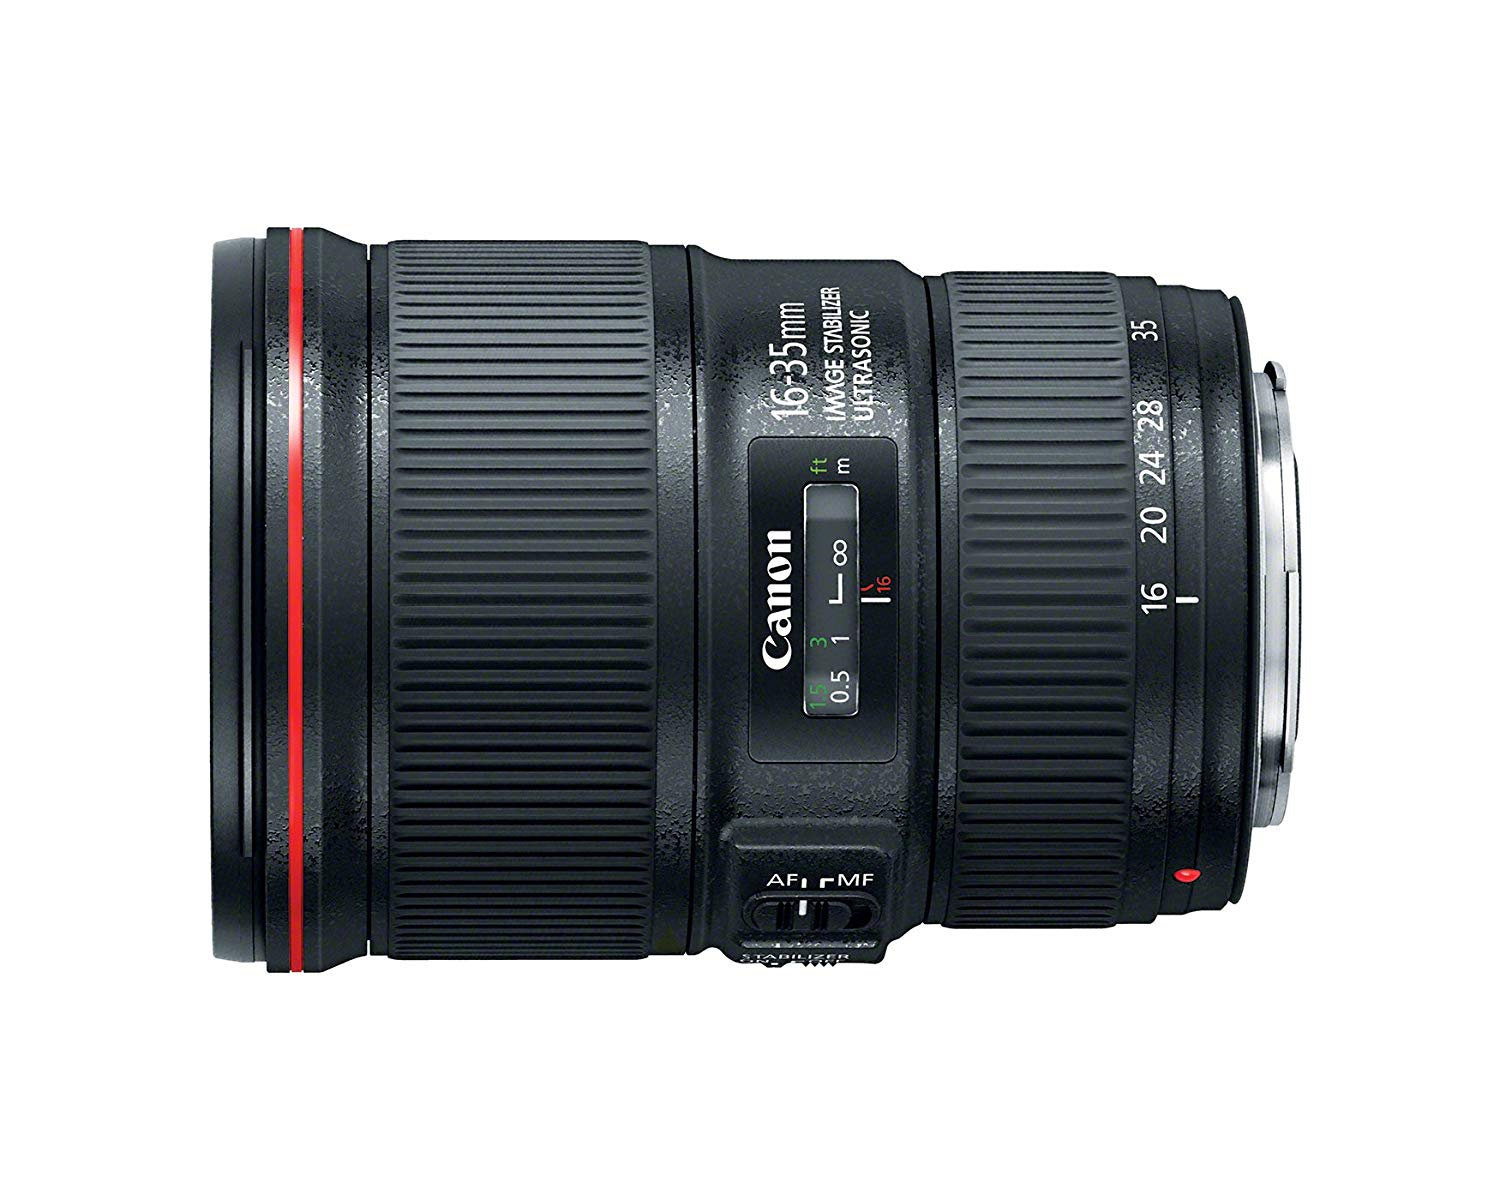 Canon EF 16-35mm f/4L IS USM Lens - Buy on Amazon.com